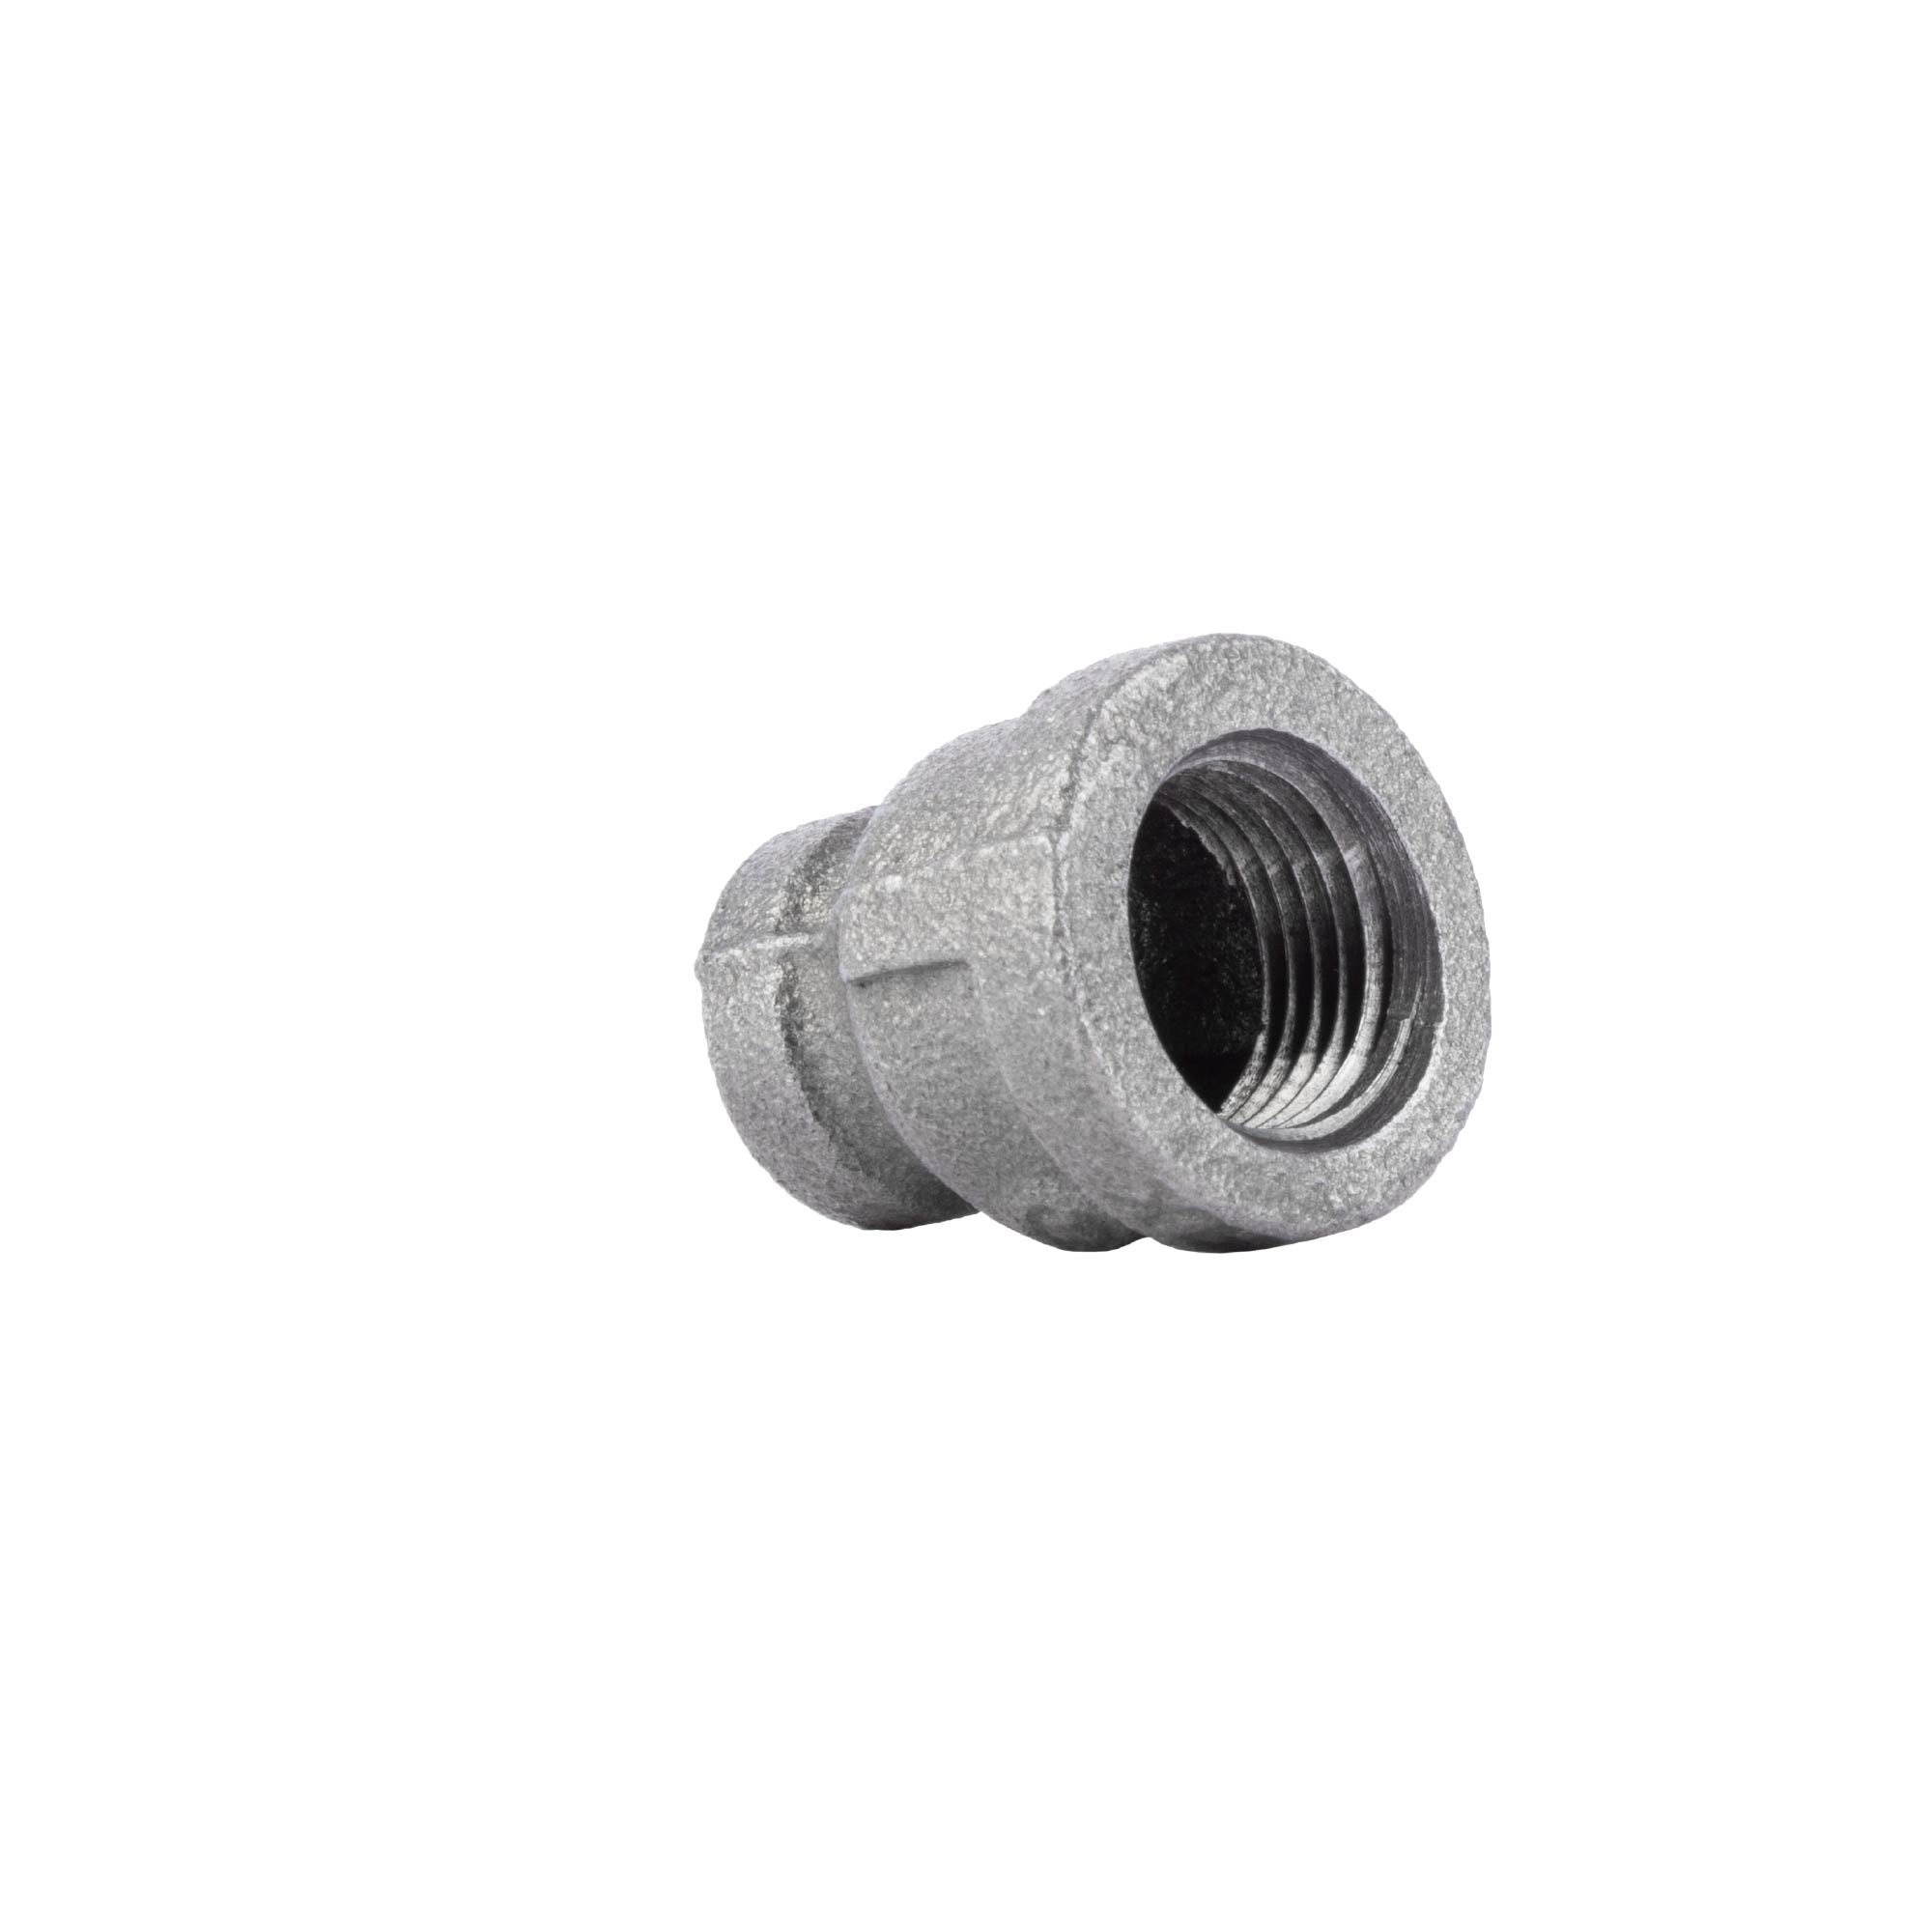 1/2 IN X 1/4 IN REDUCING COUPLING